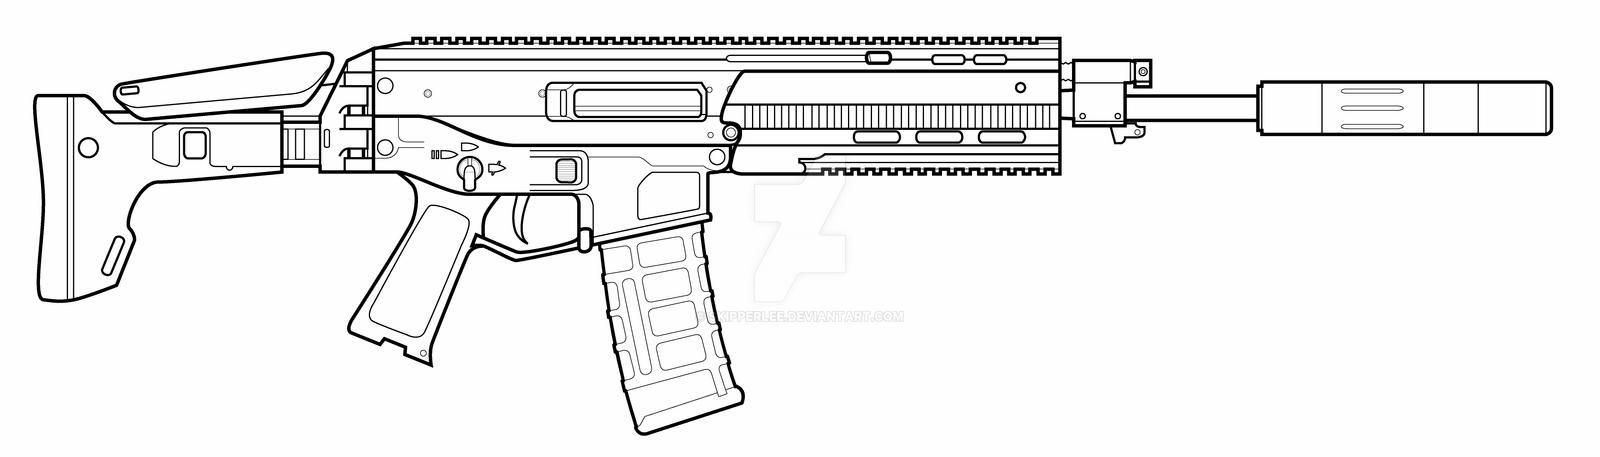 how to draw ar bushmaster acr by skipperlee on deviantart draw ar how to